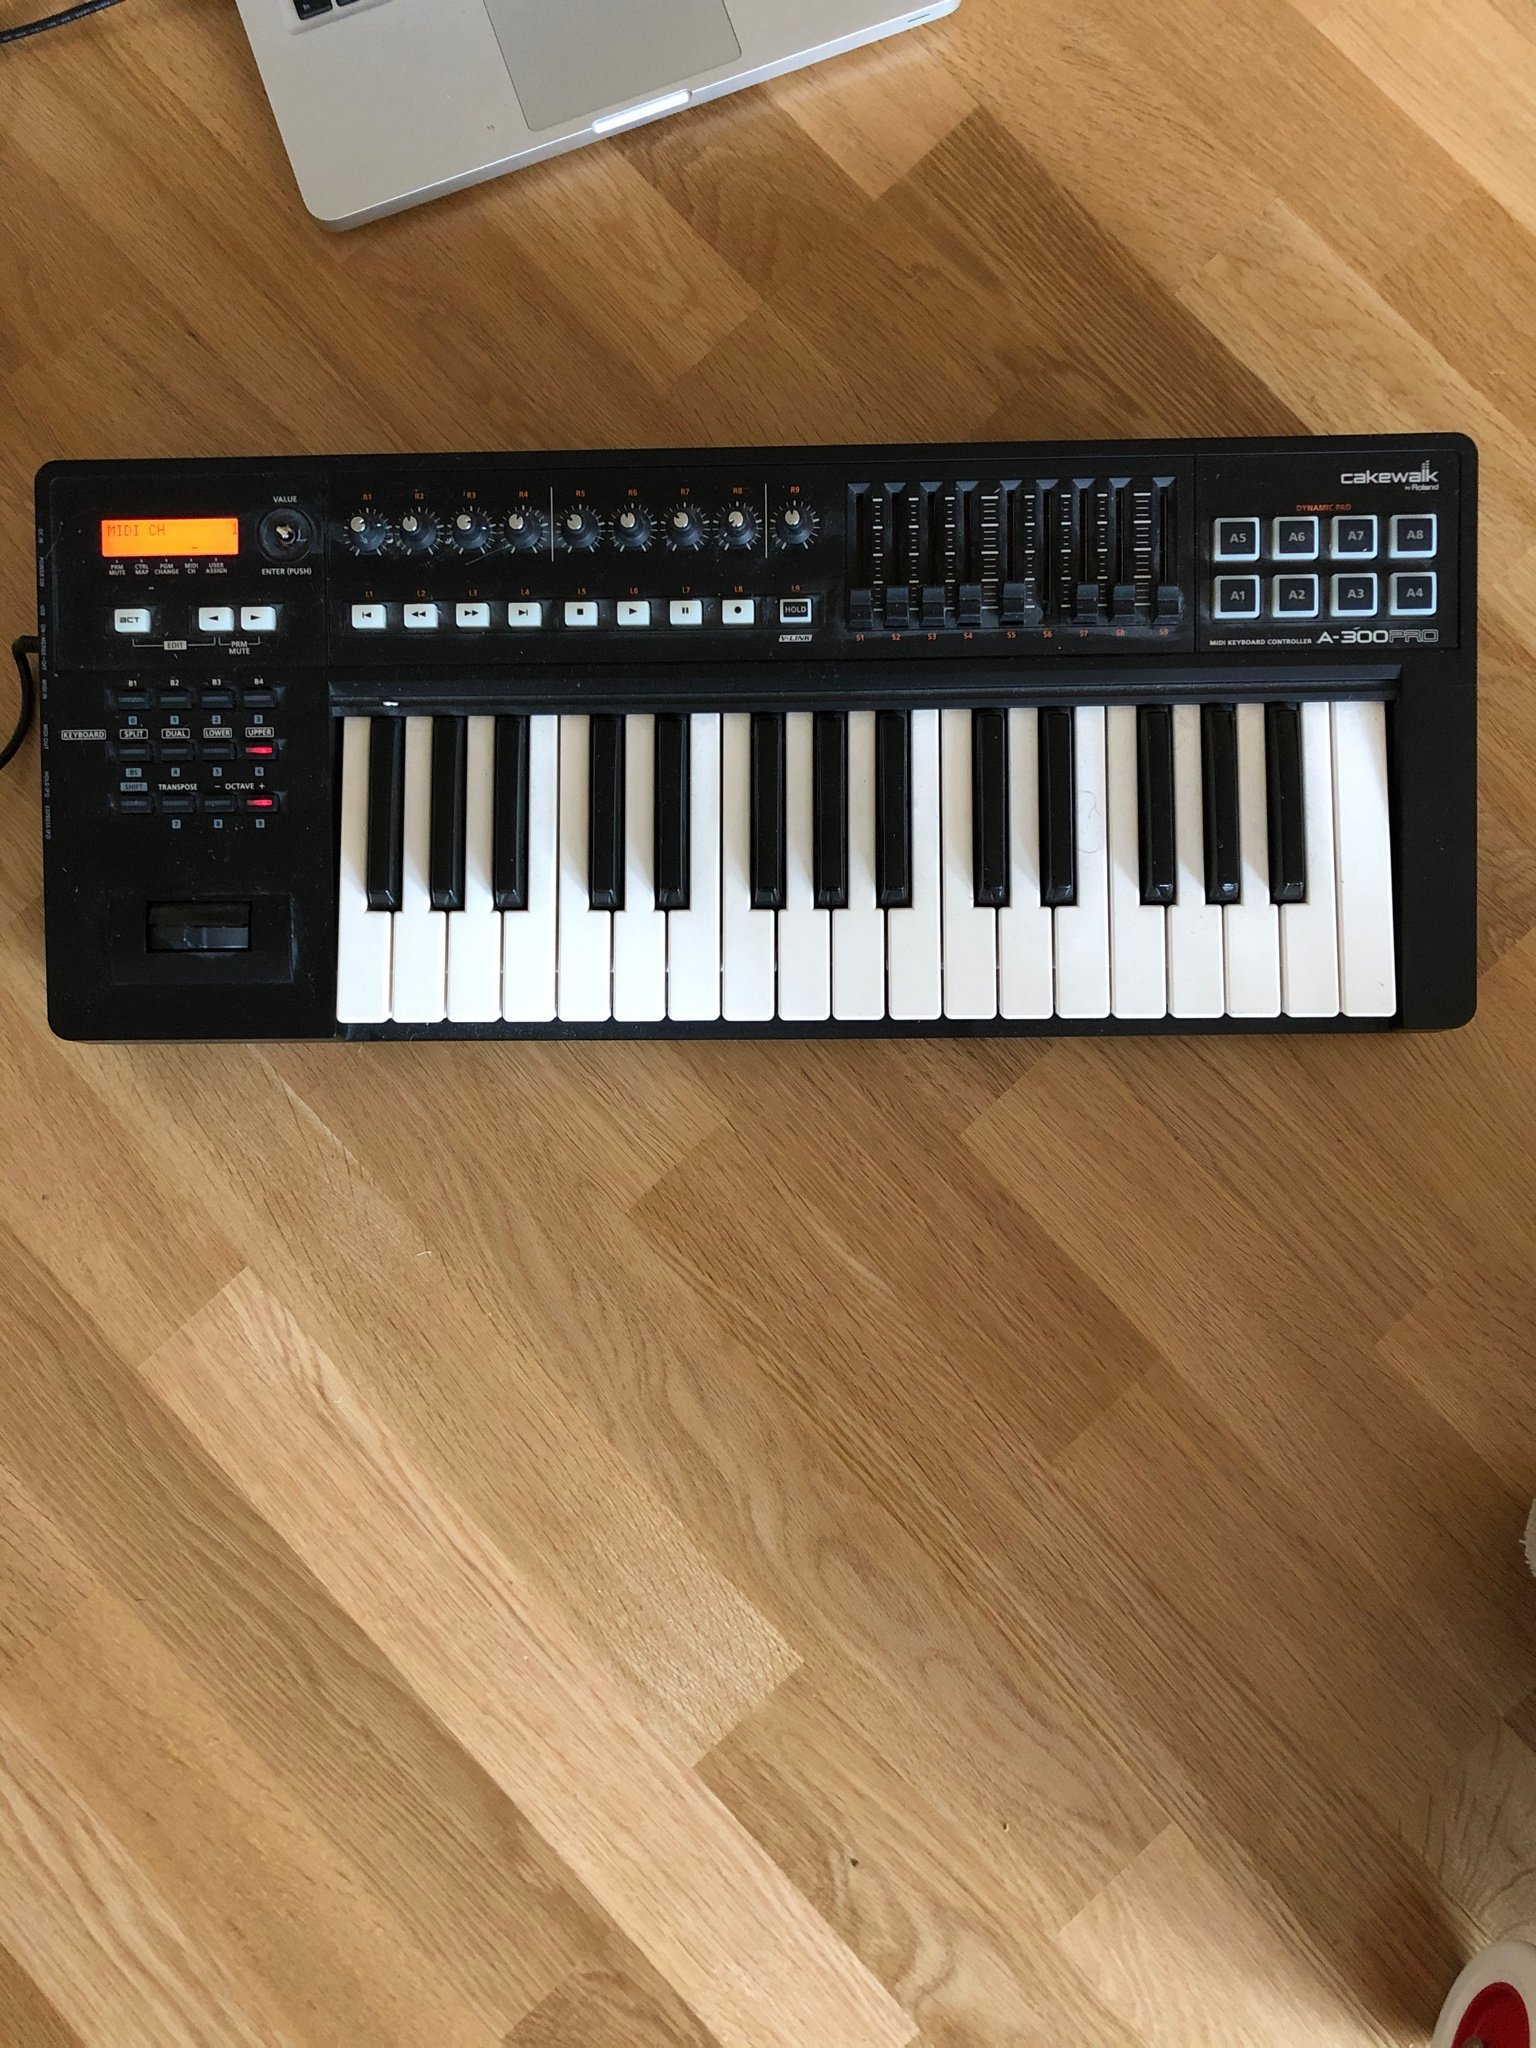 Roland A-300 PRO Cakewalk MIDI-synth